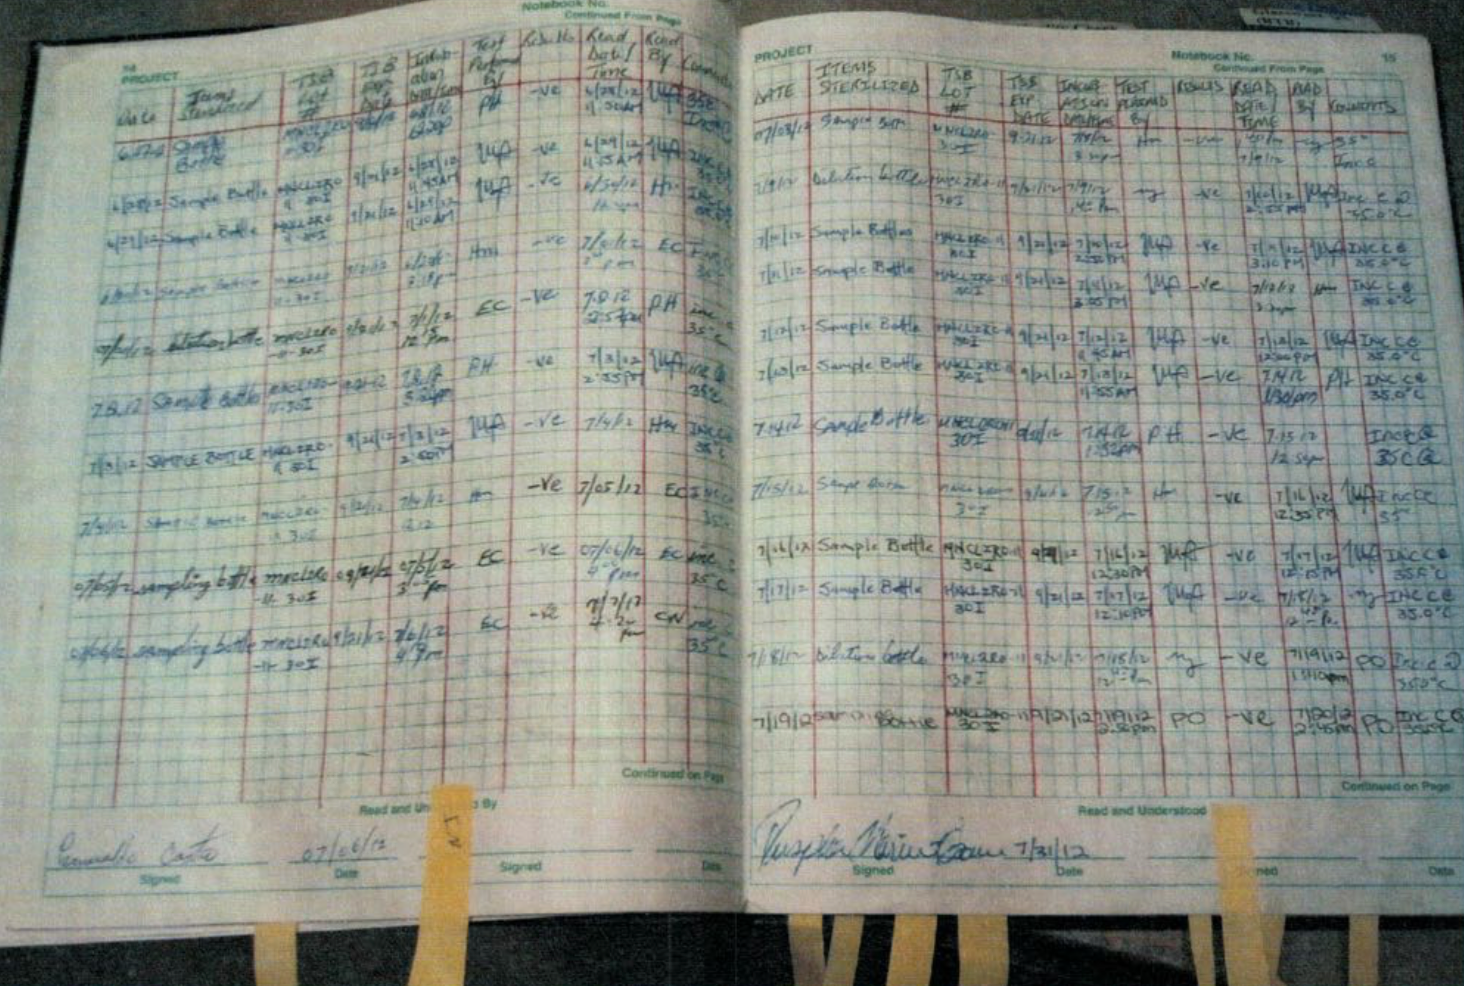 A whistleblower's photograph showing how one  water-testing logbook  used by the  Newtown Creek Laboratory  of the  New York City Department of Environmental Protection  was allegedly flagged to mark test results that violated environmental laws. The Amended Notice alleged that the chief of the lab requested that violations were to be flagged by an official and that other officials were directed to amend the violating entries in a manner to fraudulently represent compliance with laws. Source : Juris Group PLLC.